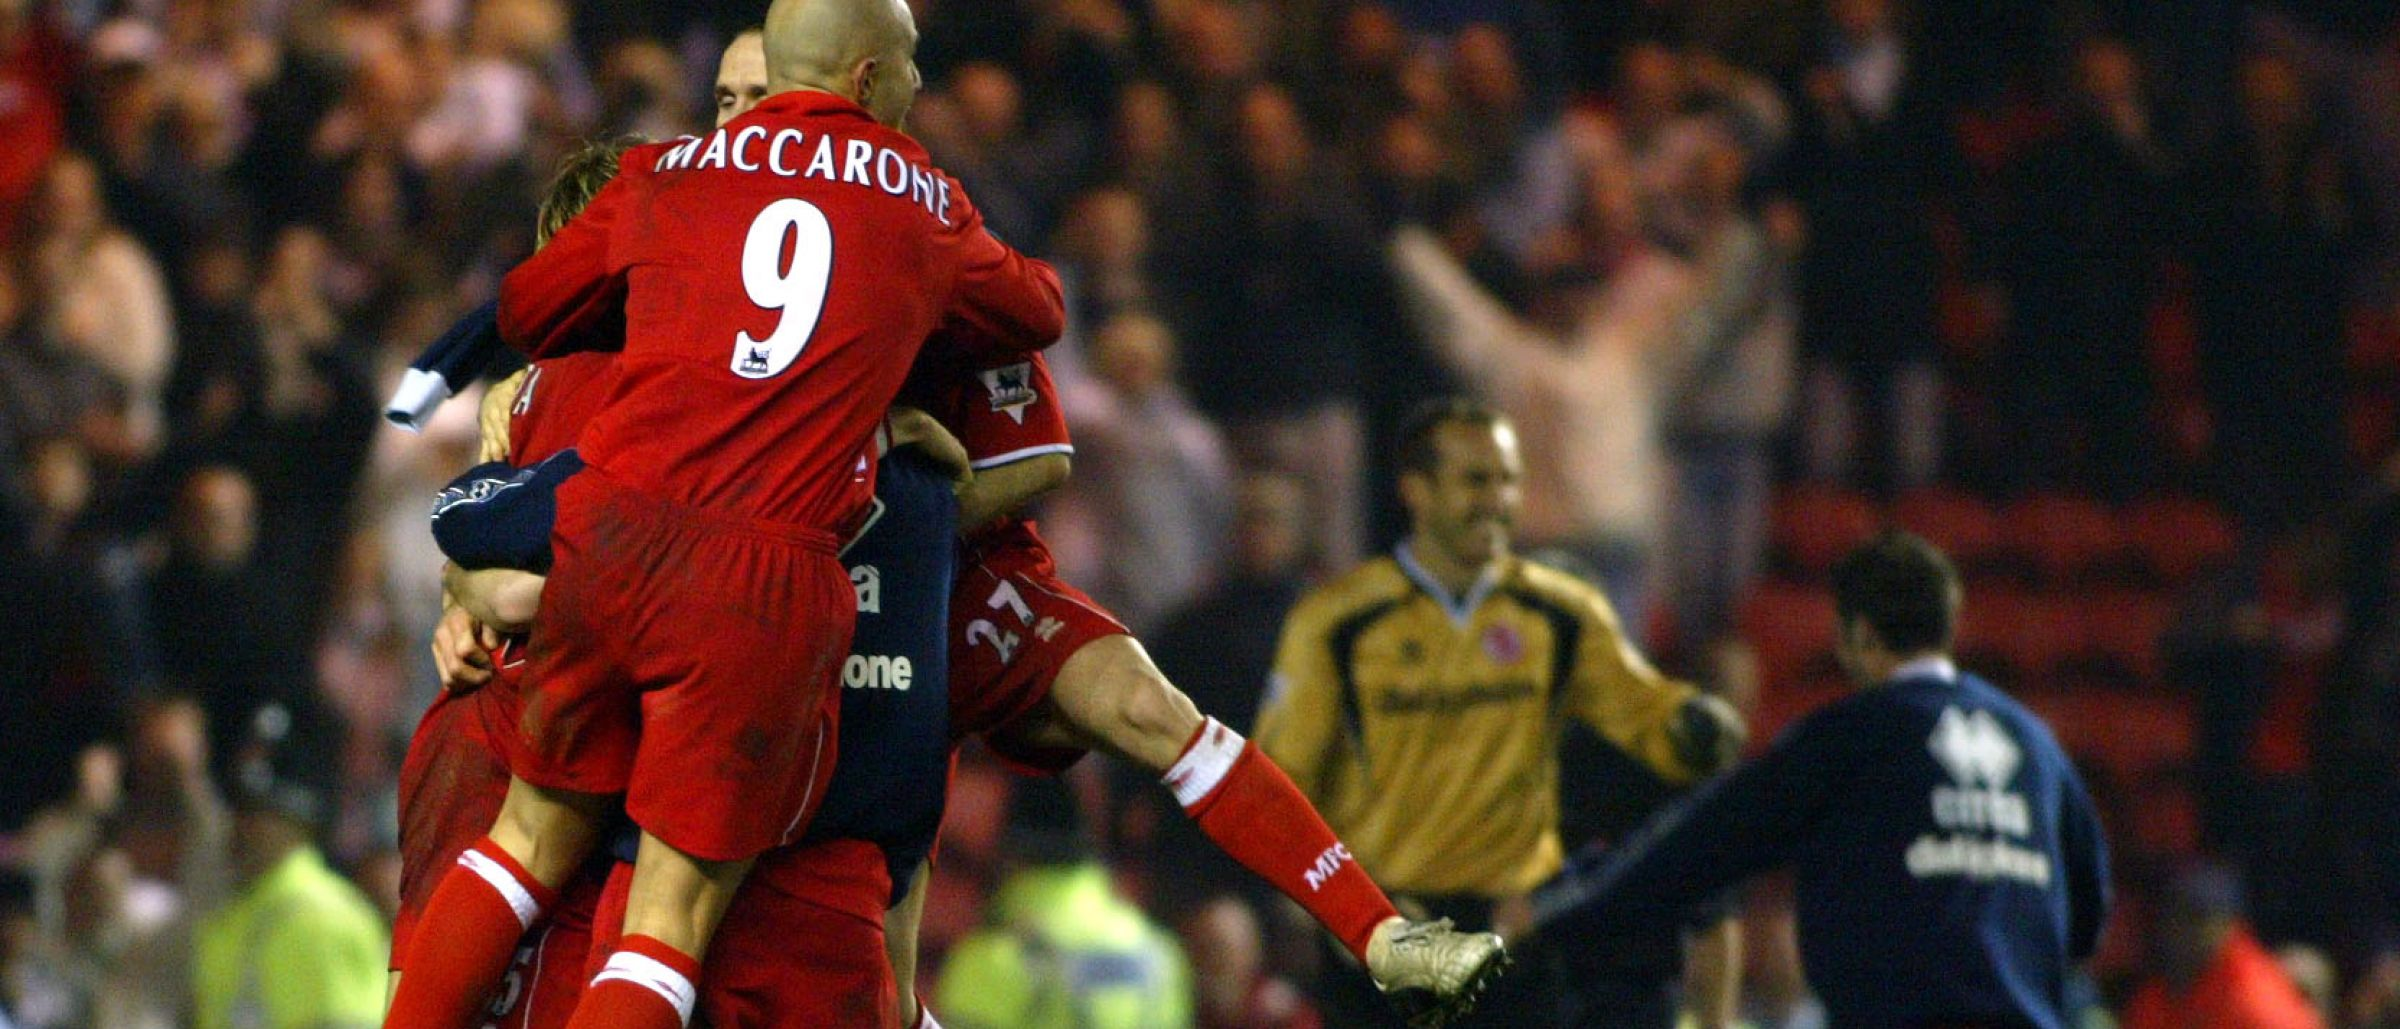 Boro players celebrate against Everton 2003 Carling Cup